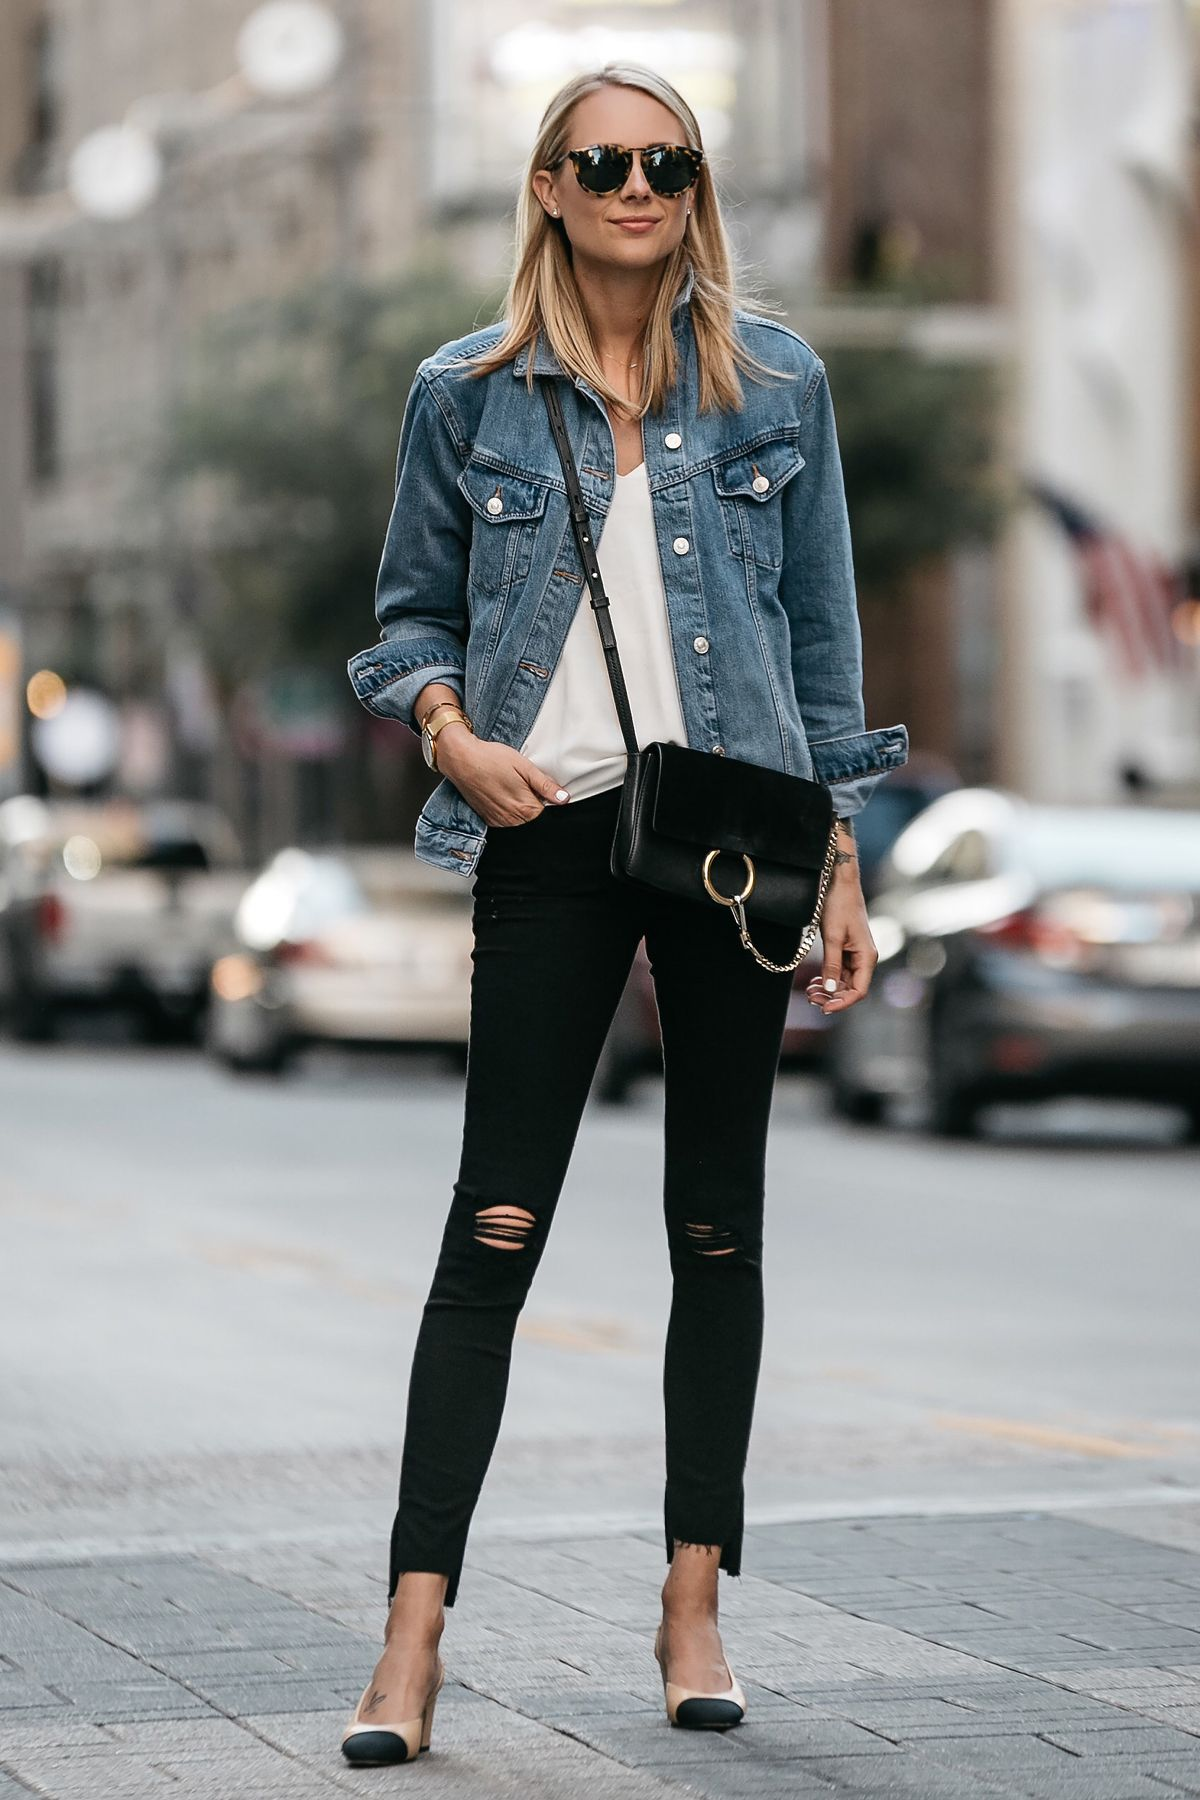 22f9466f22ef Blonde Woman Wearing Topshop Oversized Denim Jacket Frame Black Ripped  Skinny Jeans Chloe Faye Handbag Chanel Slingbacks Fashion Jackson Dallas  Blogger ...